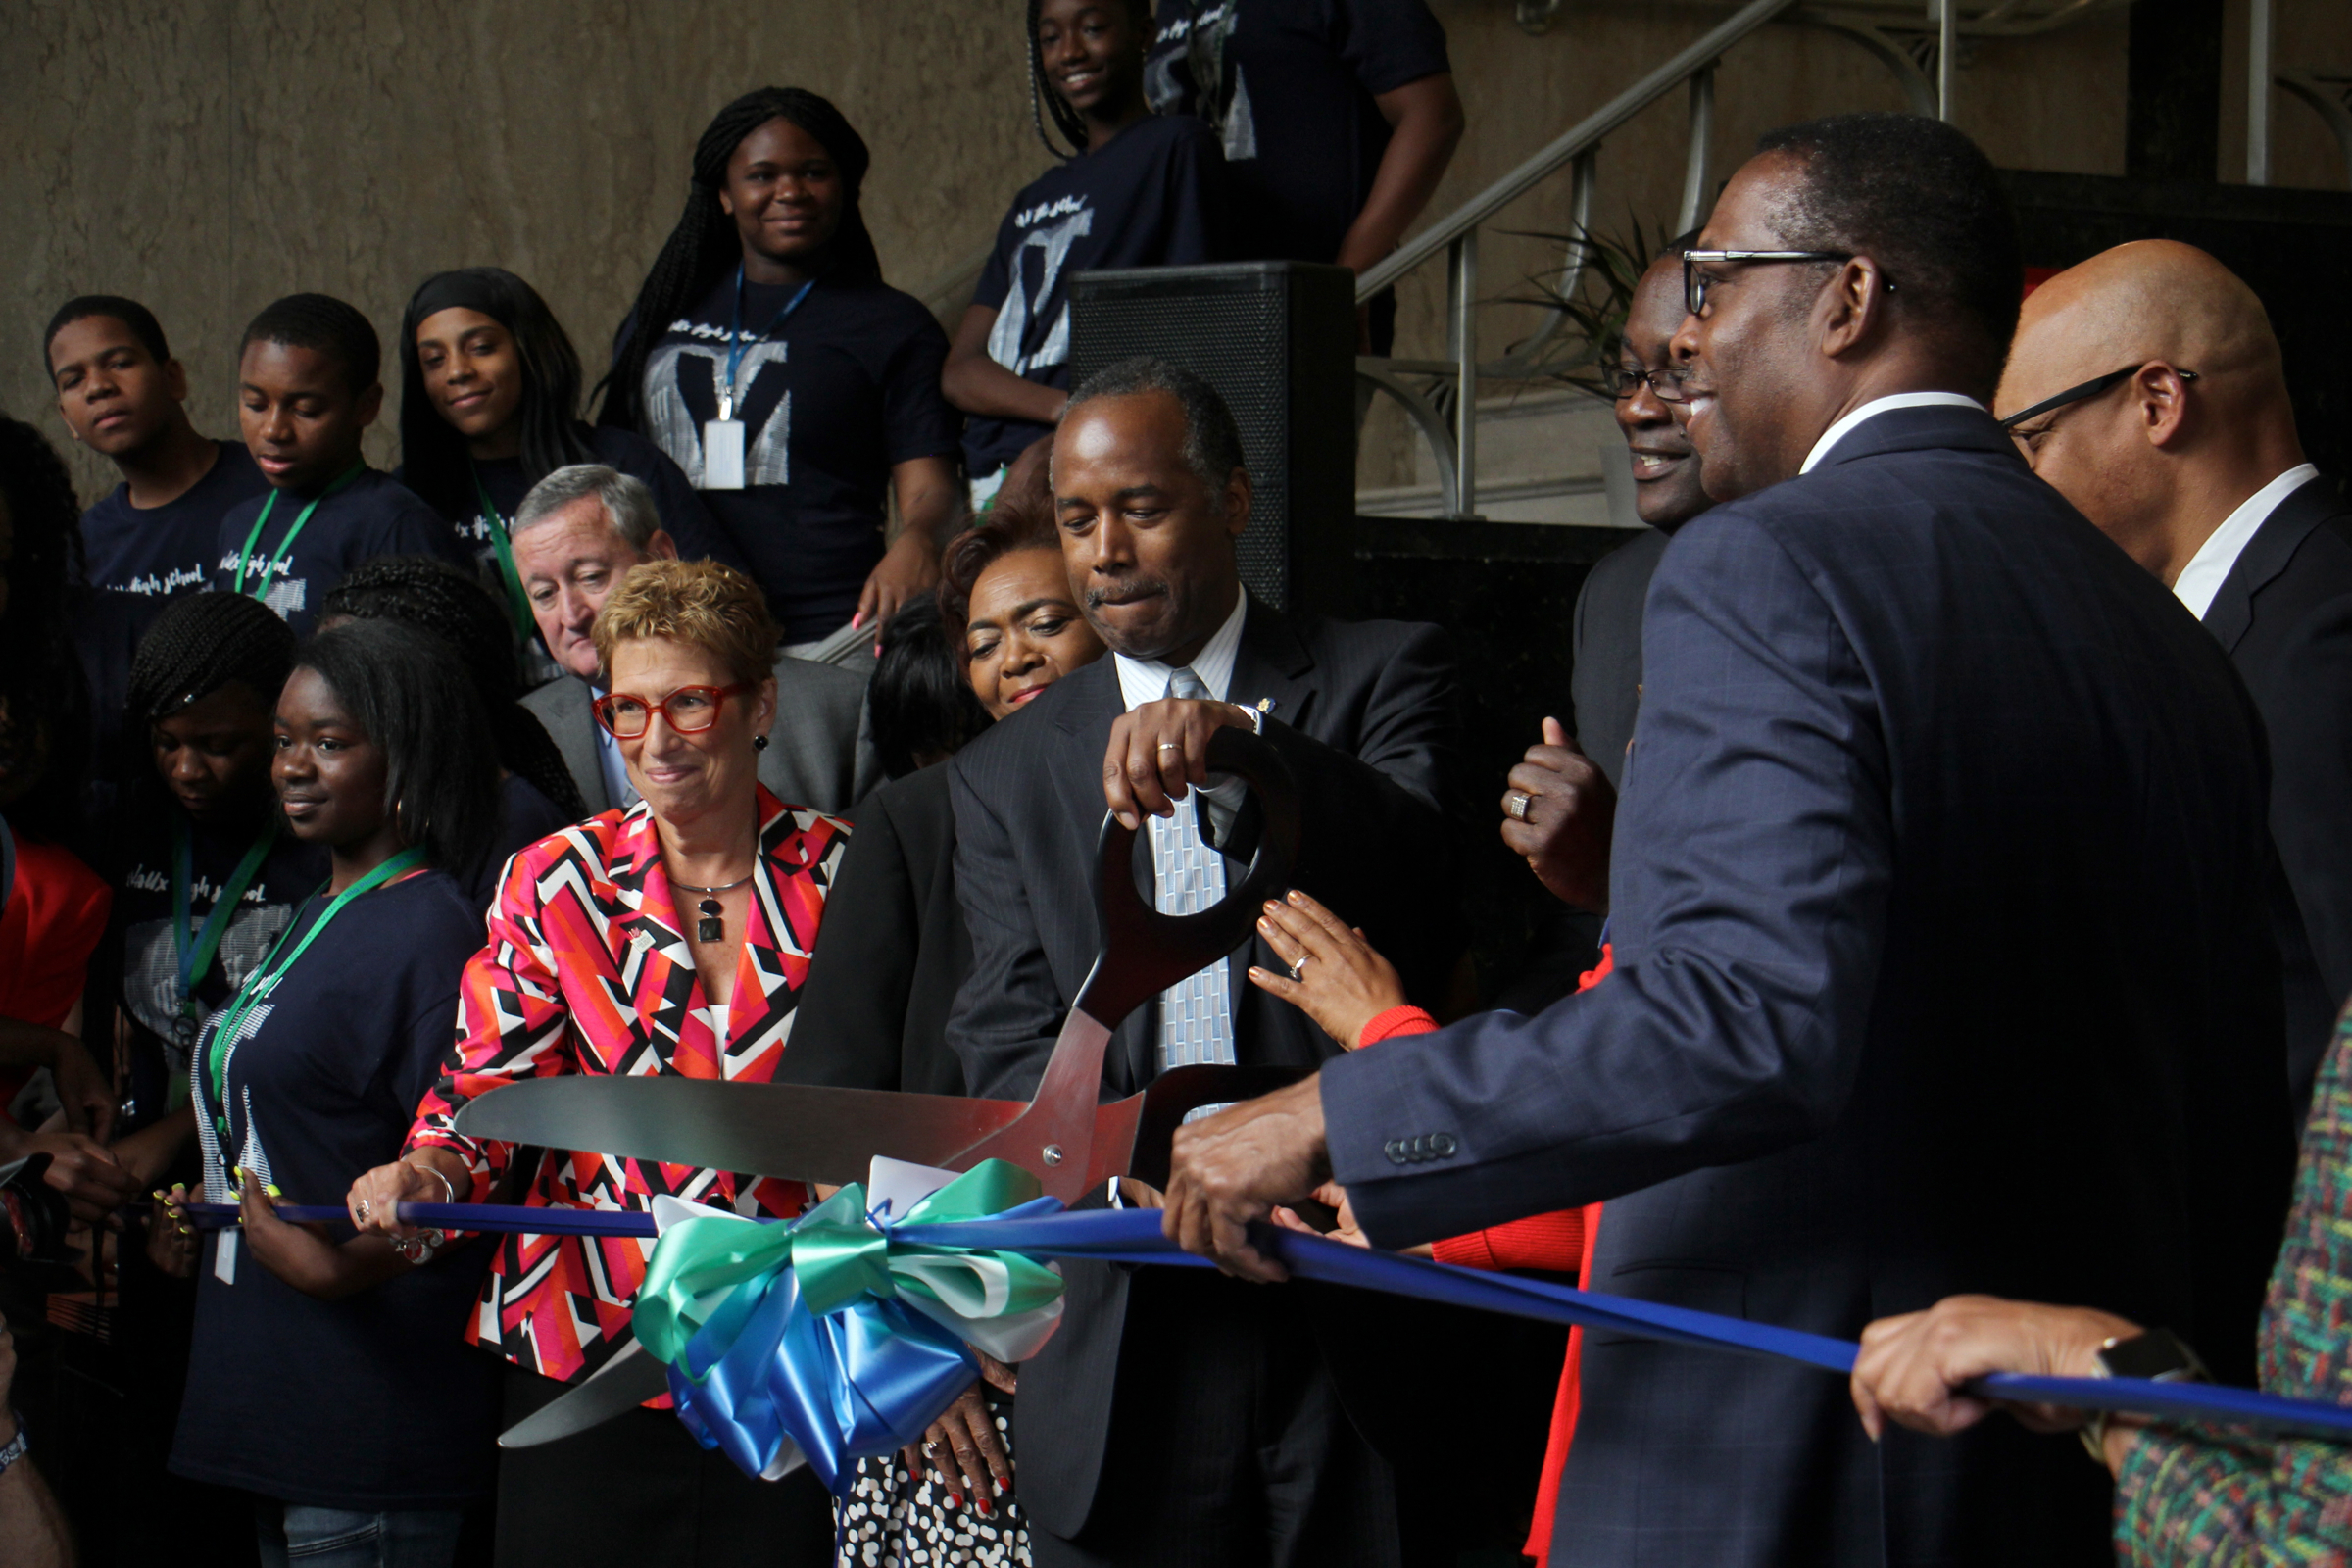 Flanked by Philadelphia officials, HUD Sec. Carson cuts ribbon at opening of Vaux Big Picture High School in Sharswood